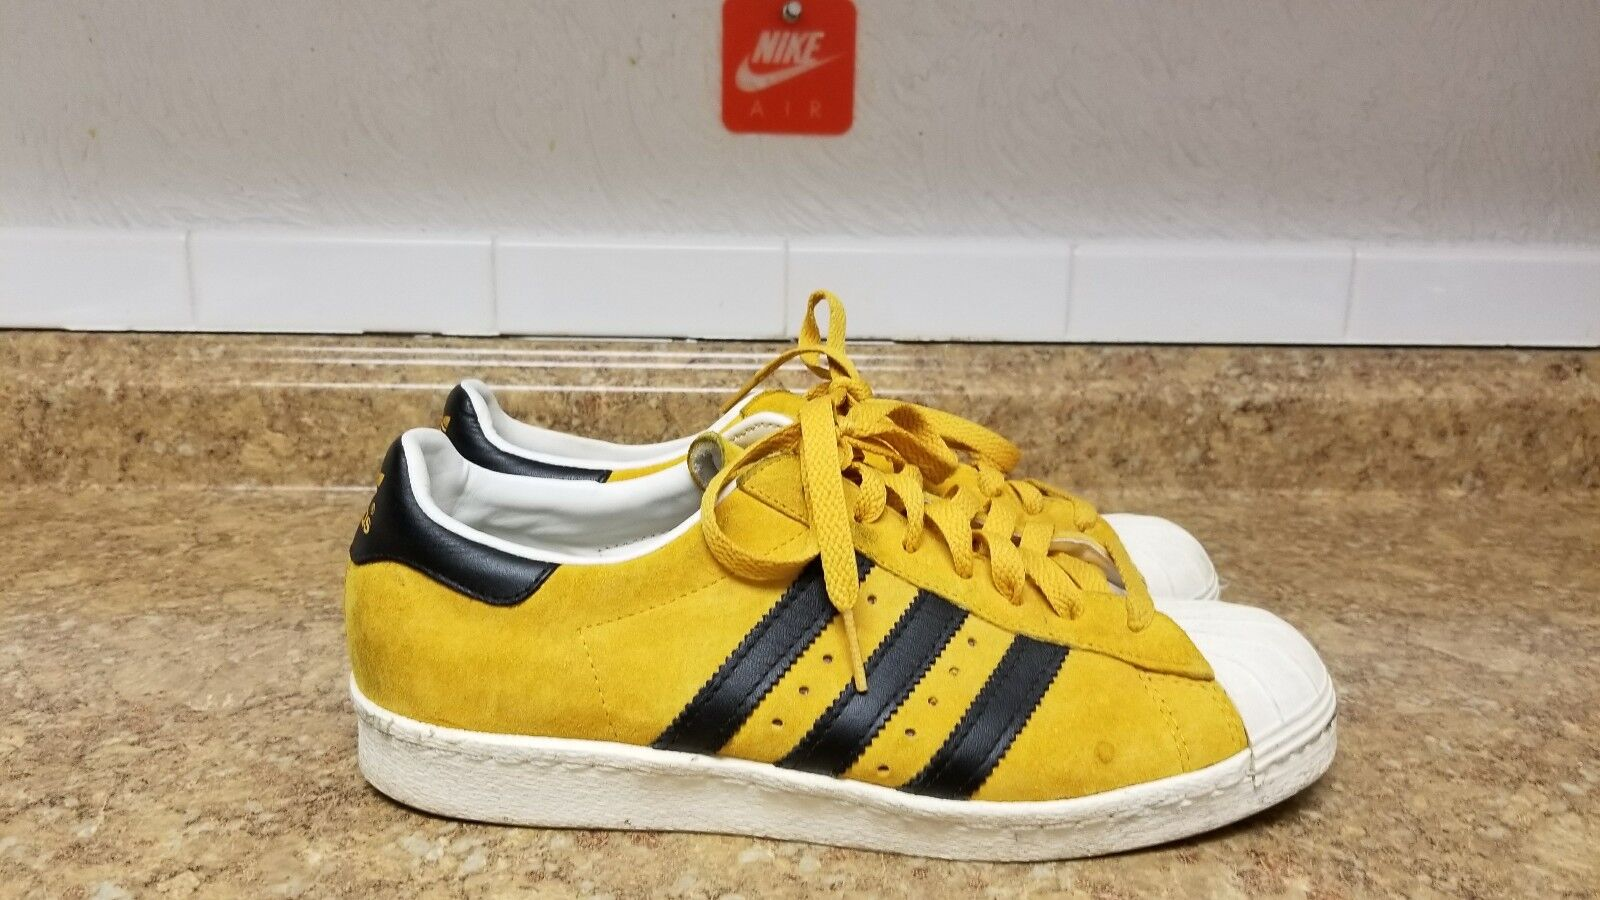 ADIDAS ORIGINALS SUPERSTAR 80s DLX SUEDE DELUXE GOLD BLACK SNAKE G61072 sz 8